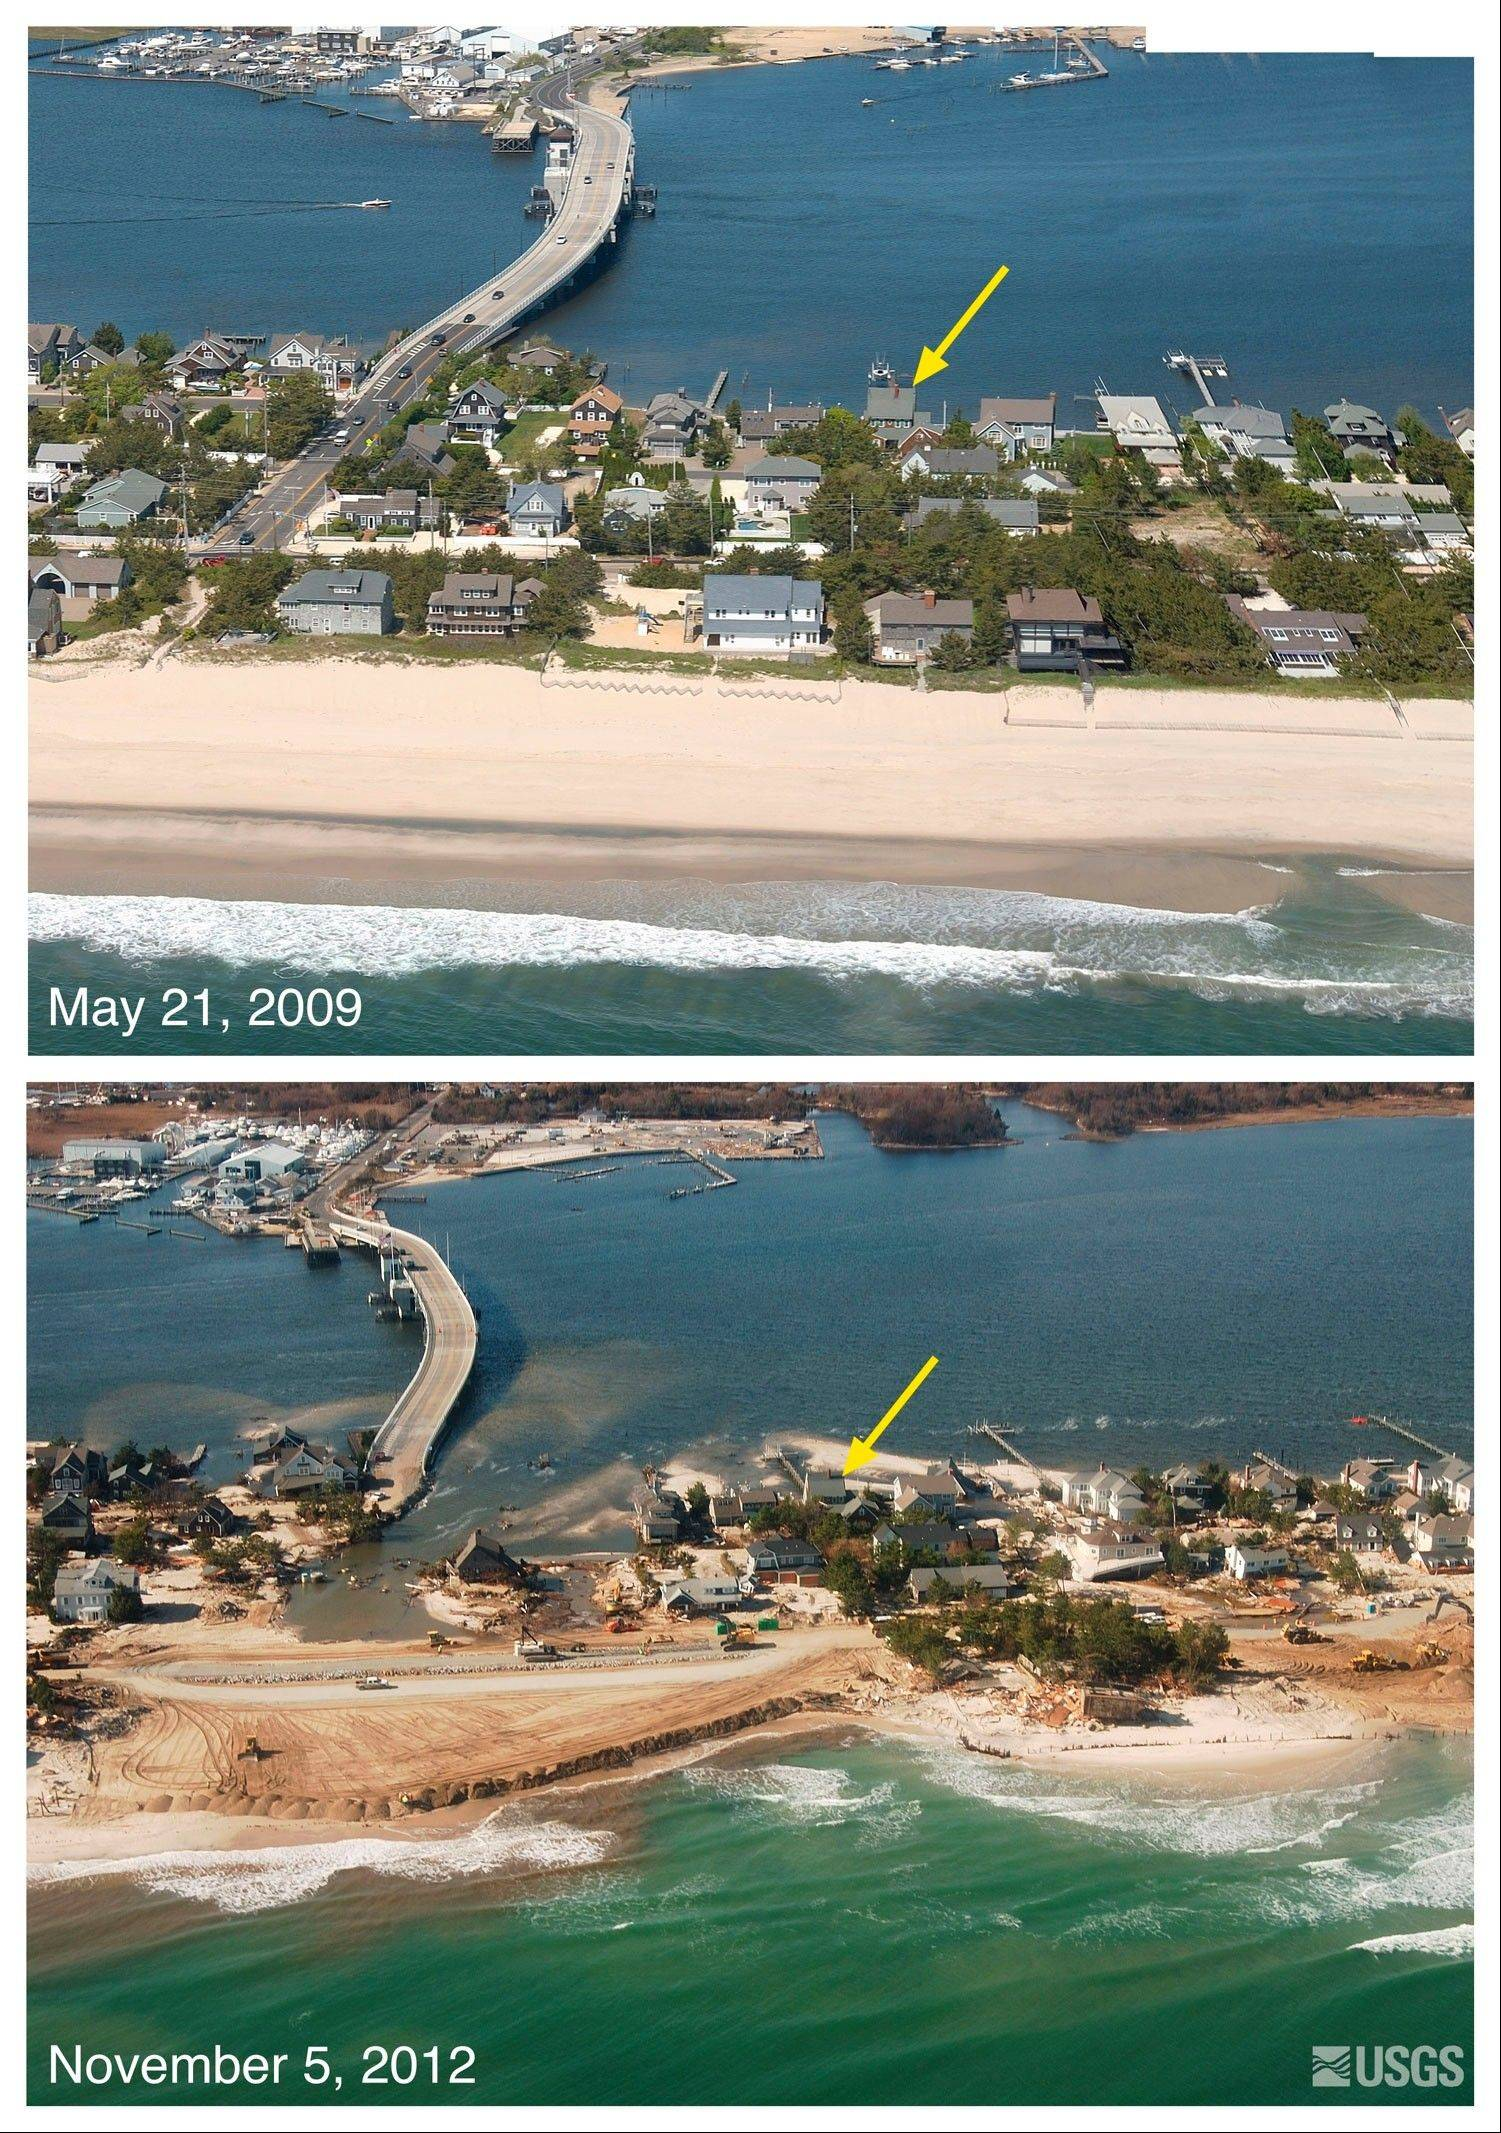 These photos provided by the U.S. Geological Survey show Mantoloking, N.J., before and after Superstorm Sandy. The top photo was created May 21, 2009, and bottom photo taken Nov. 5.